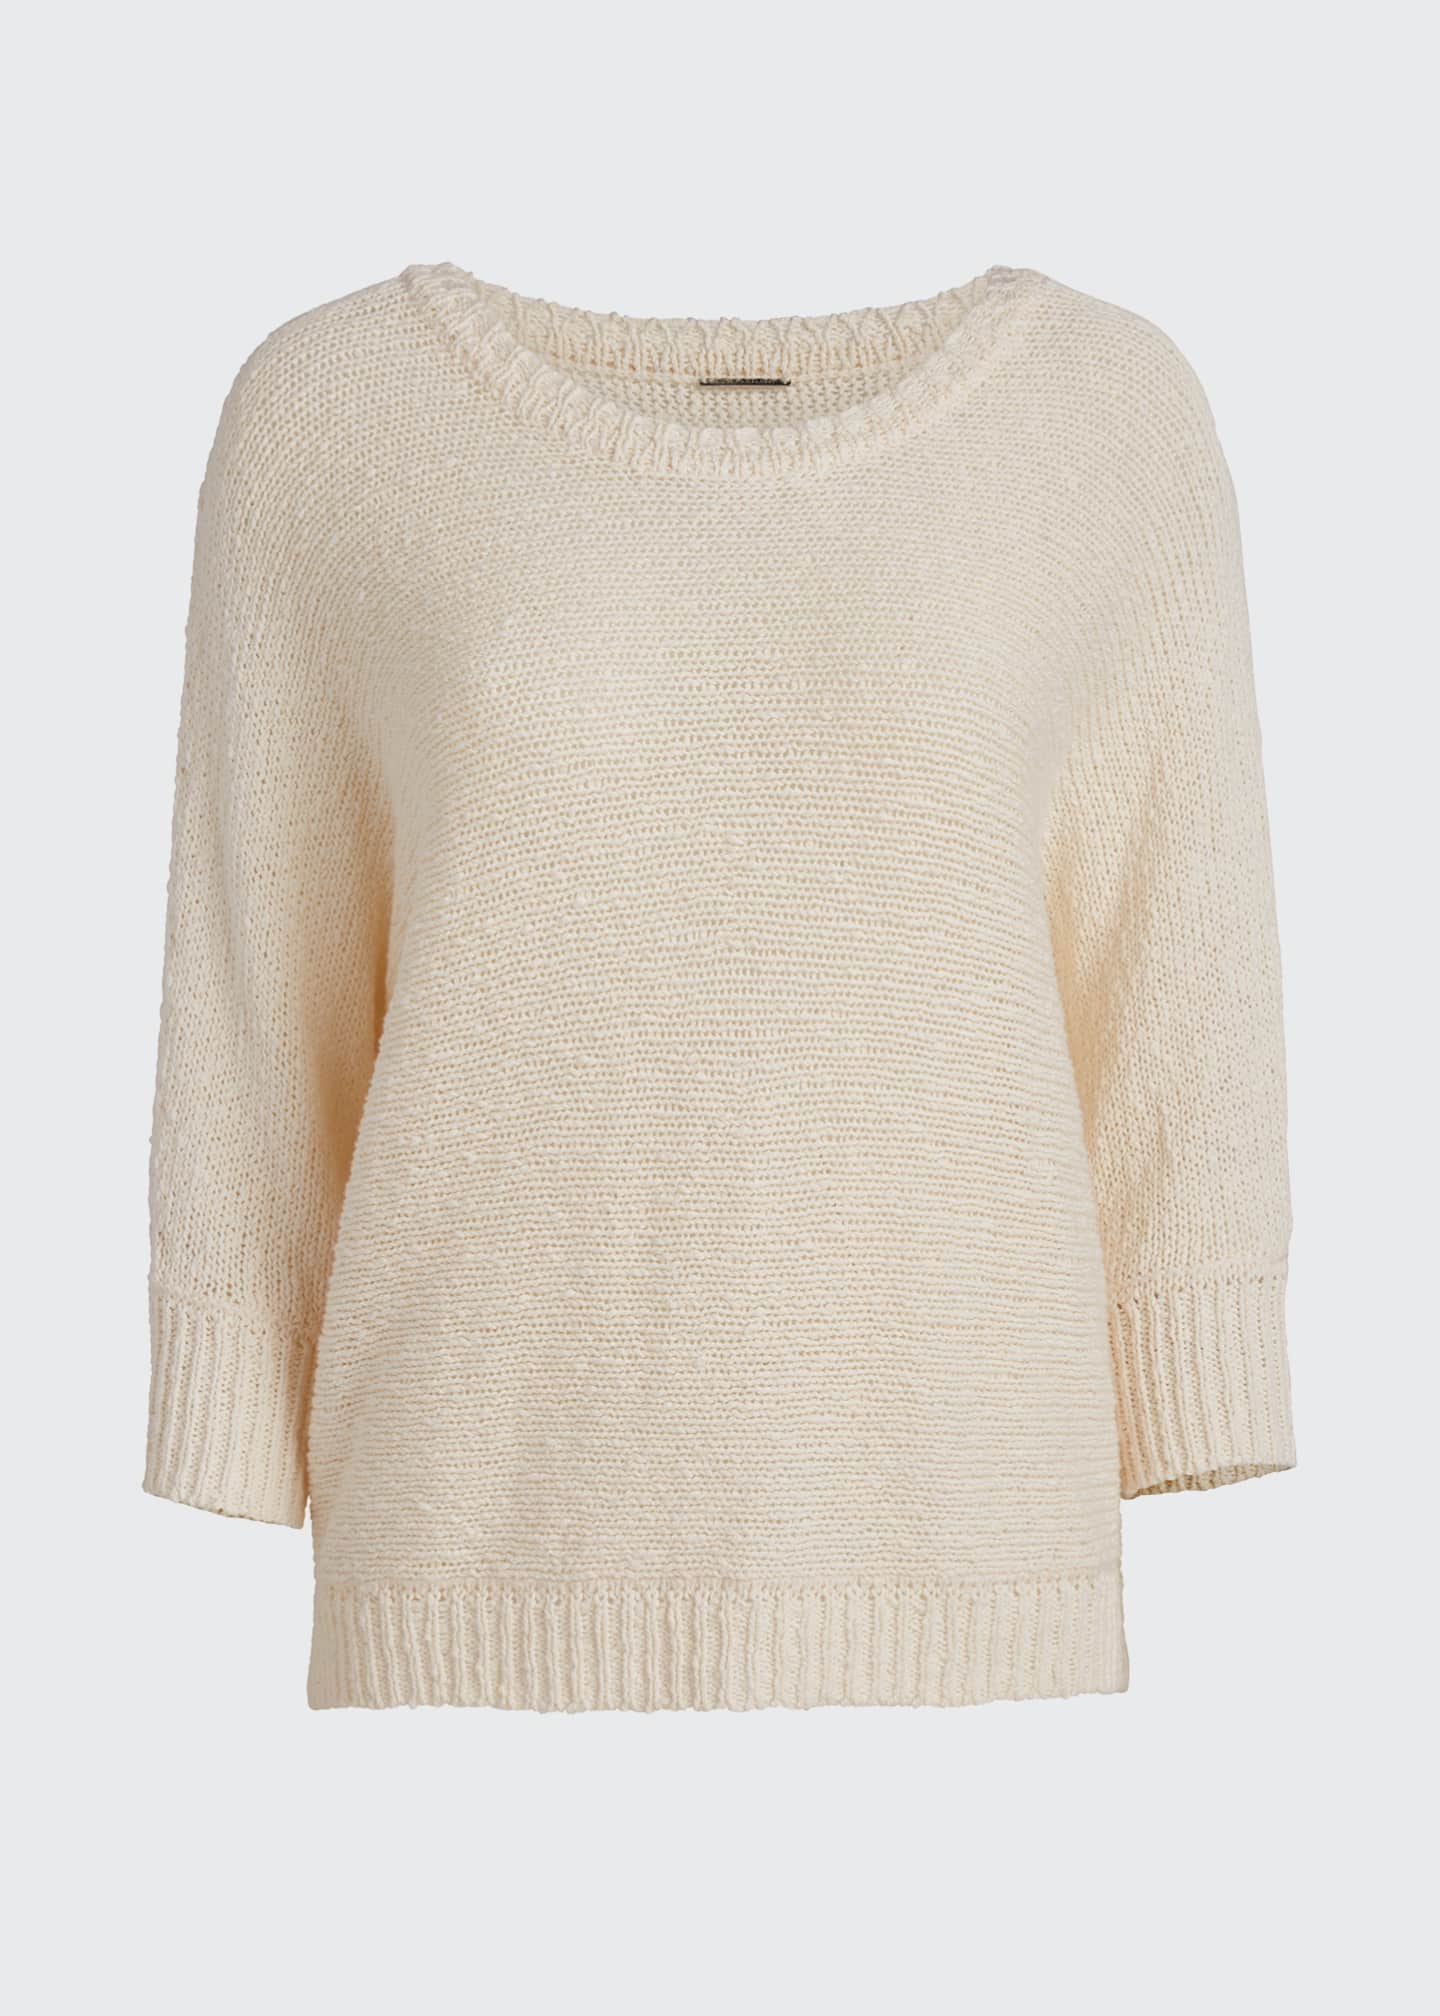 Image 5 of 5: Monroe Cotton/Hemp Sweater